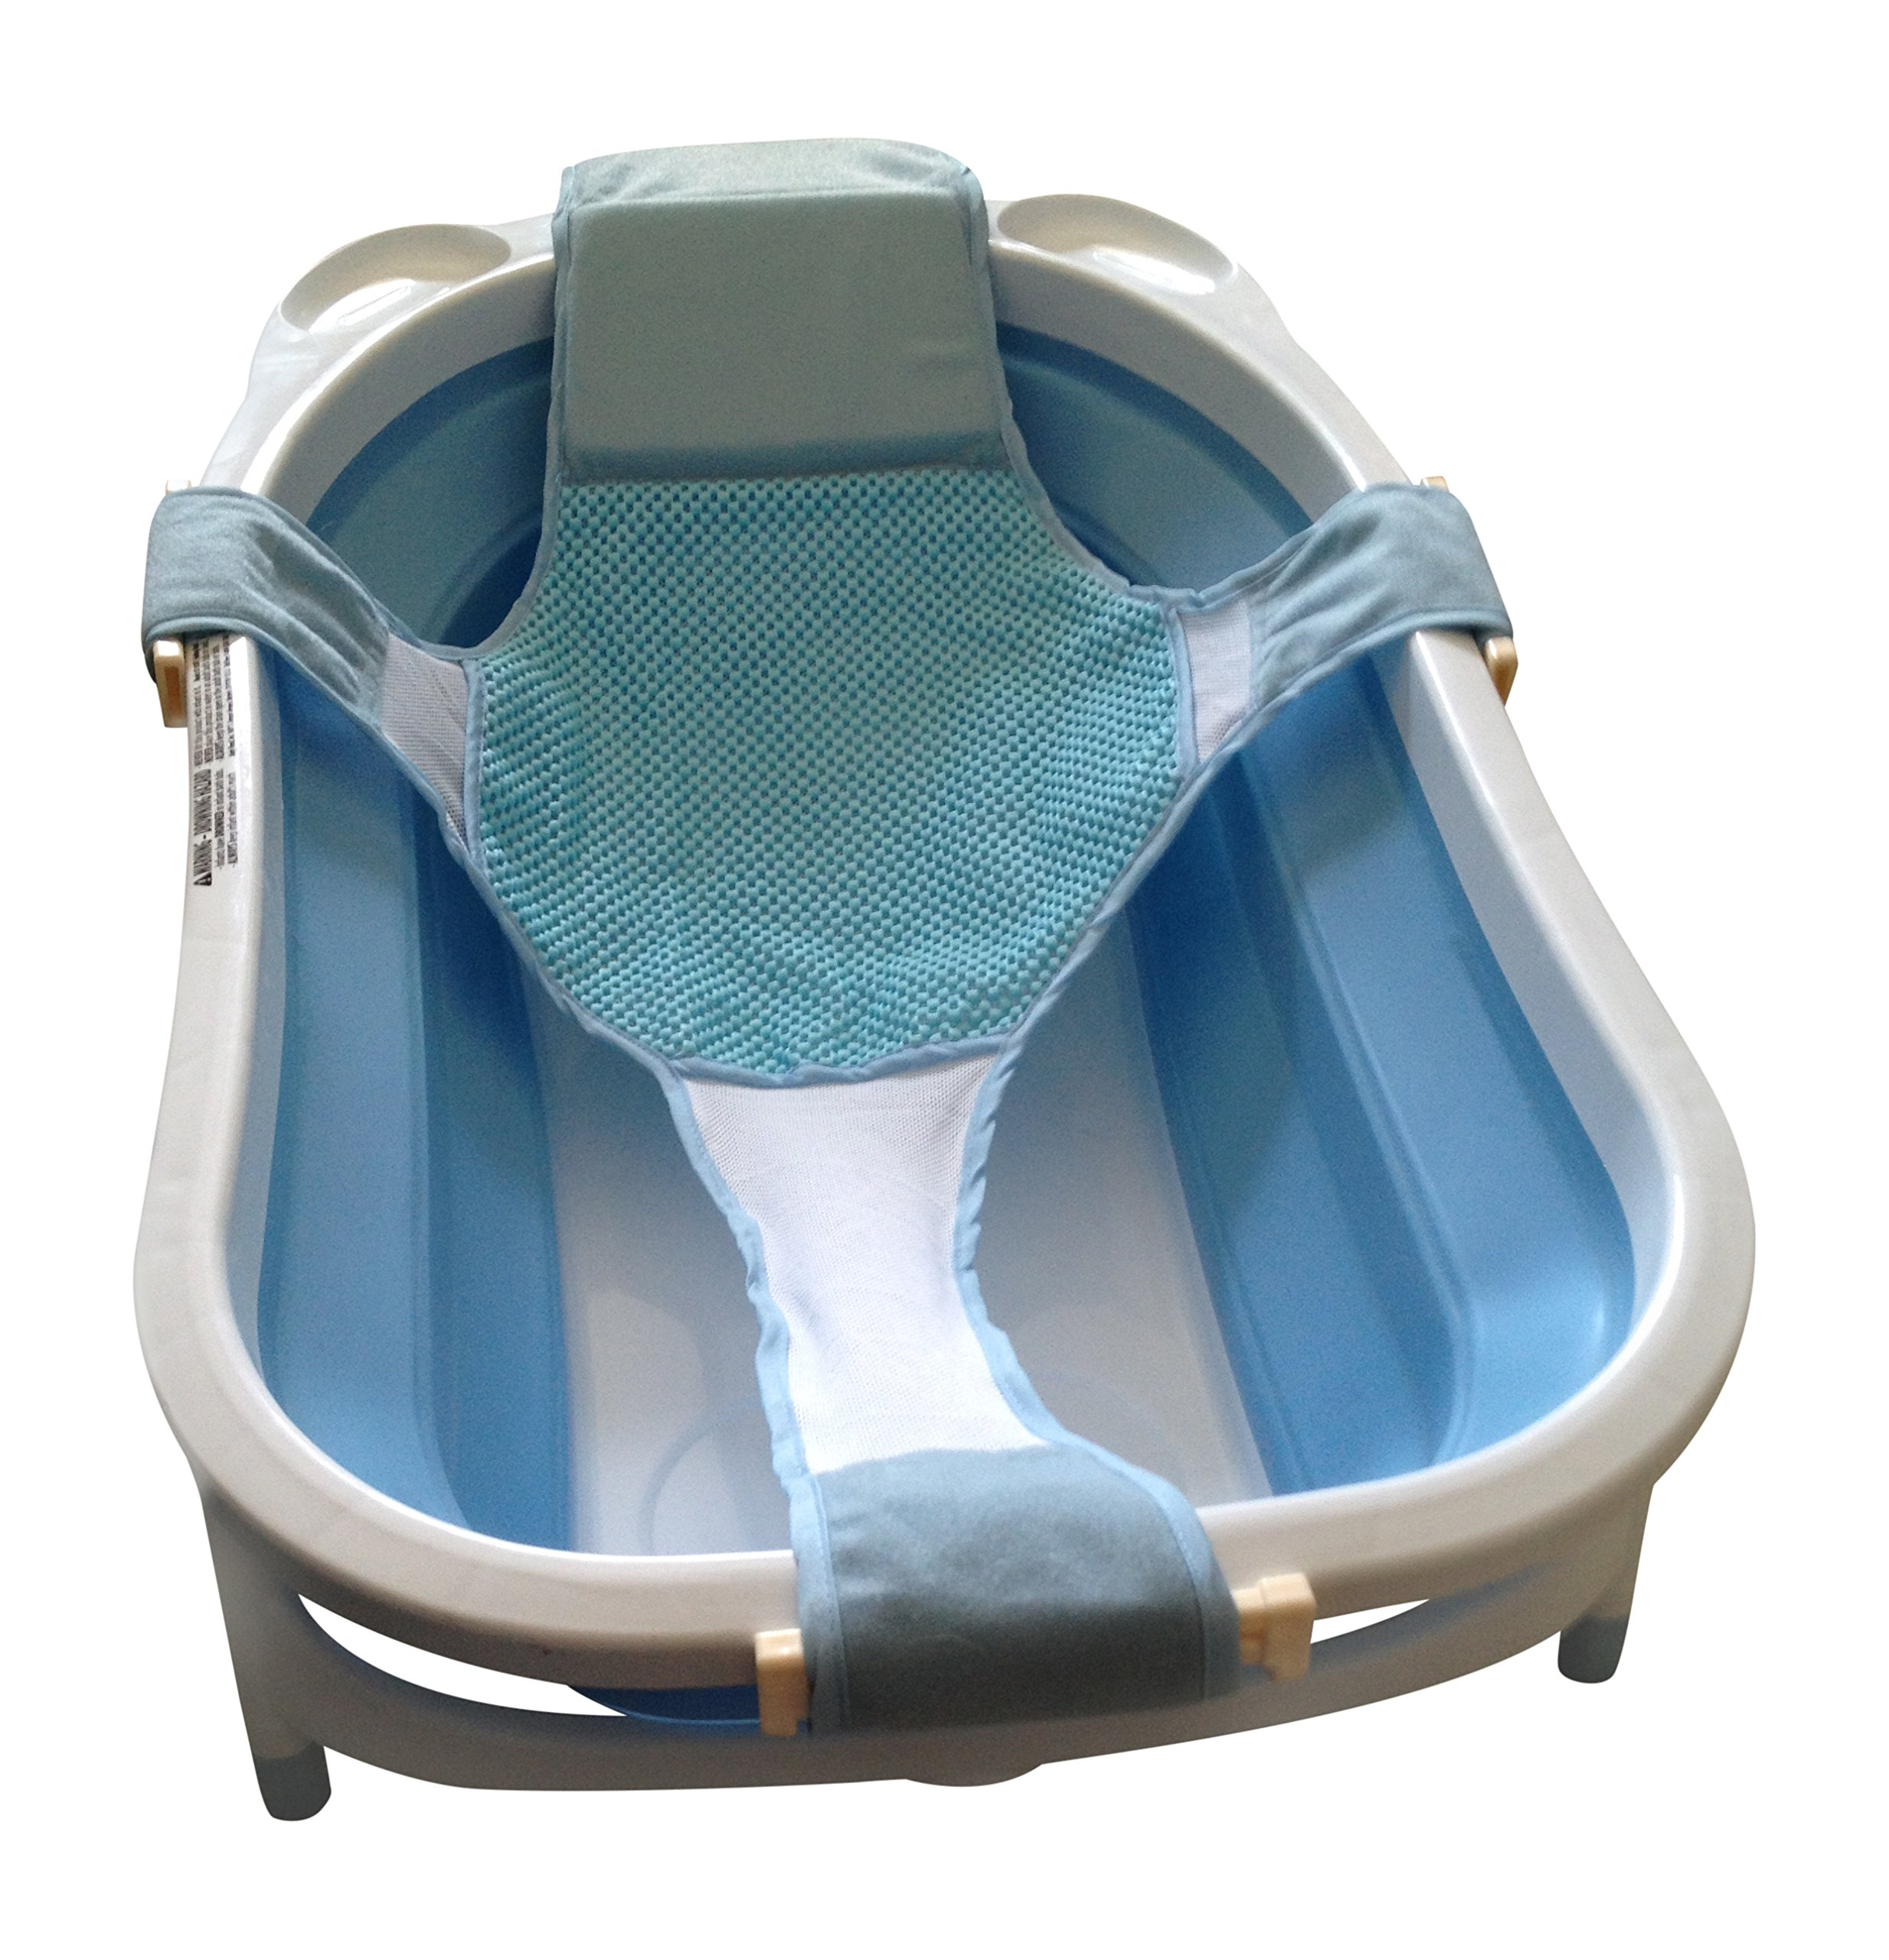 galleon baby bathtub seat support sling net karibu aojia infant bath tub hammock. Black Bedroom Furniture Sets. Home Design Ideas